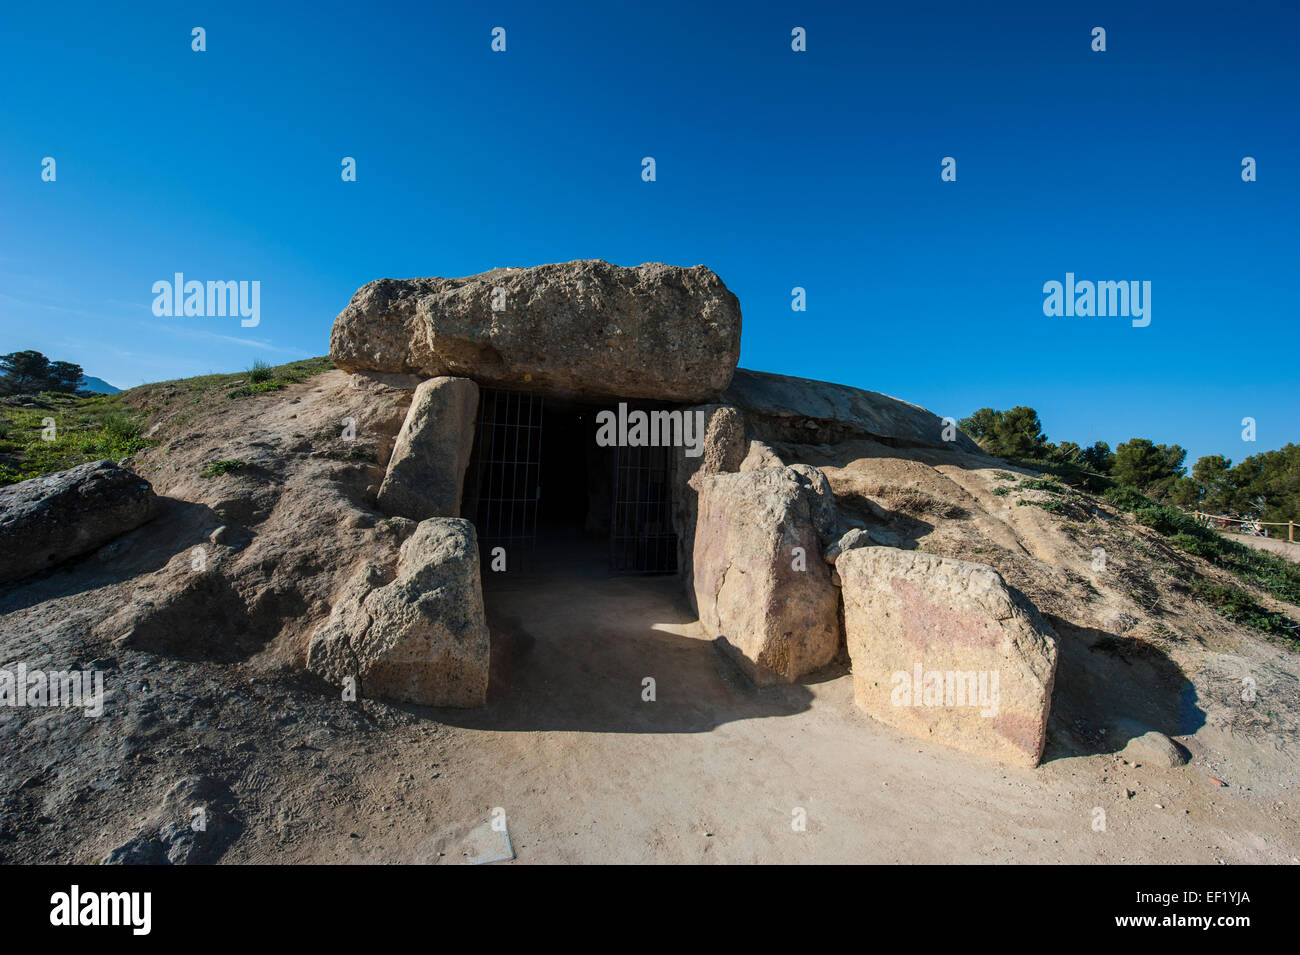 Dolmen of Menga, a megalithic burial mound located near Antequera, Málaga, Spain. Stock Photo